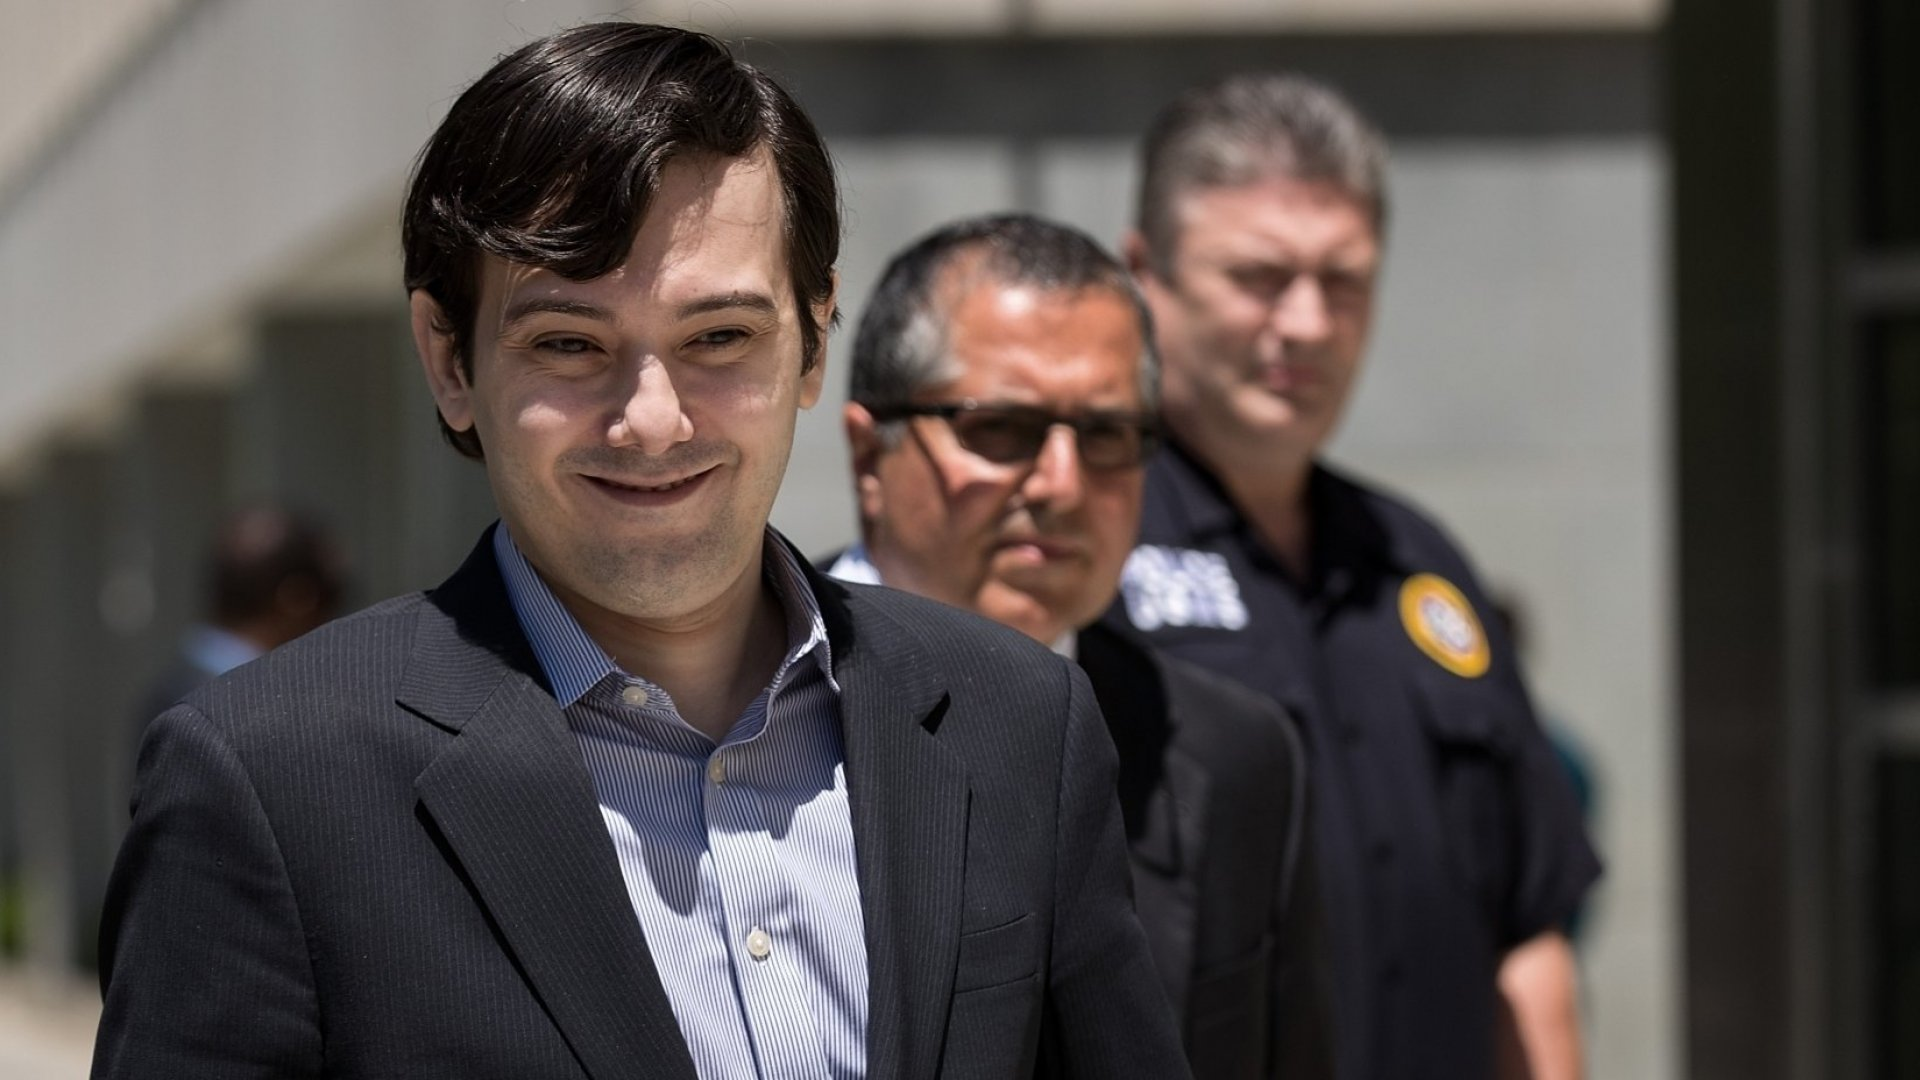 Ex-pharmaceutical executive Martin Shkreli exits the U.S. District Court for the Eastern District of New York, June 6, 2016.